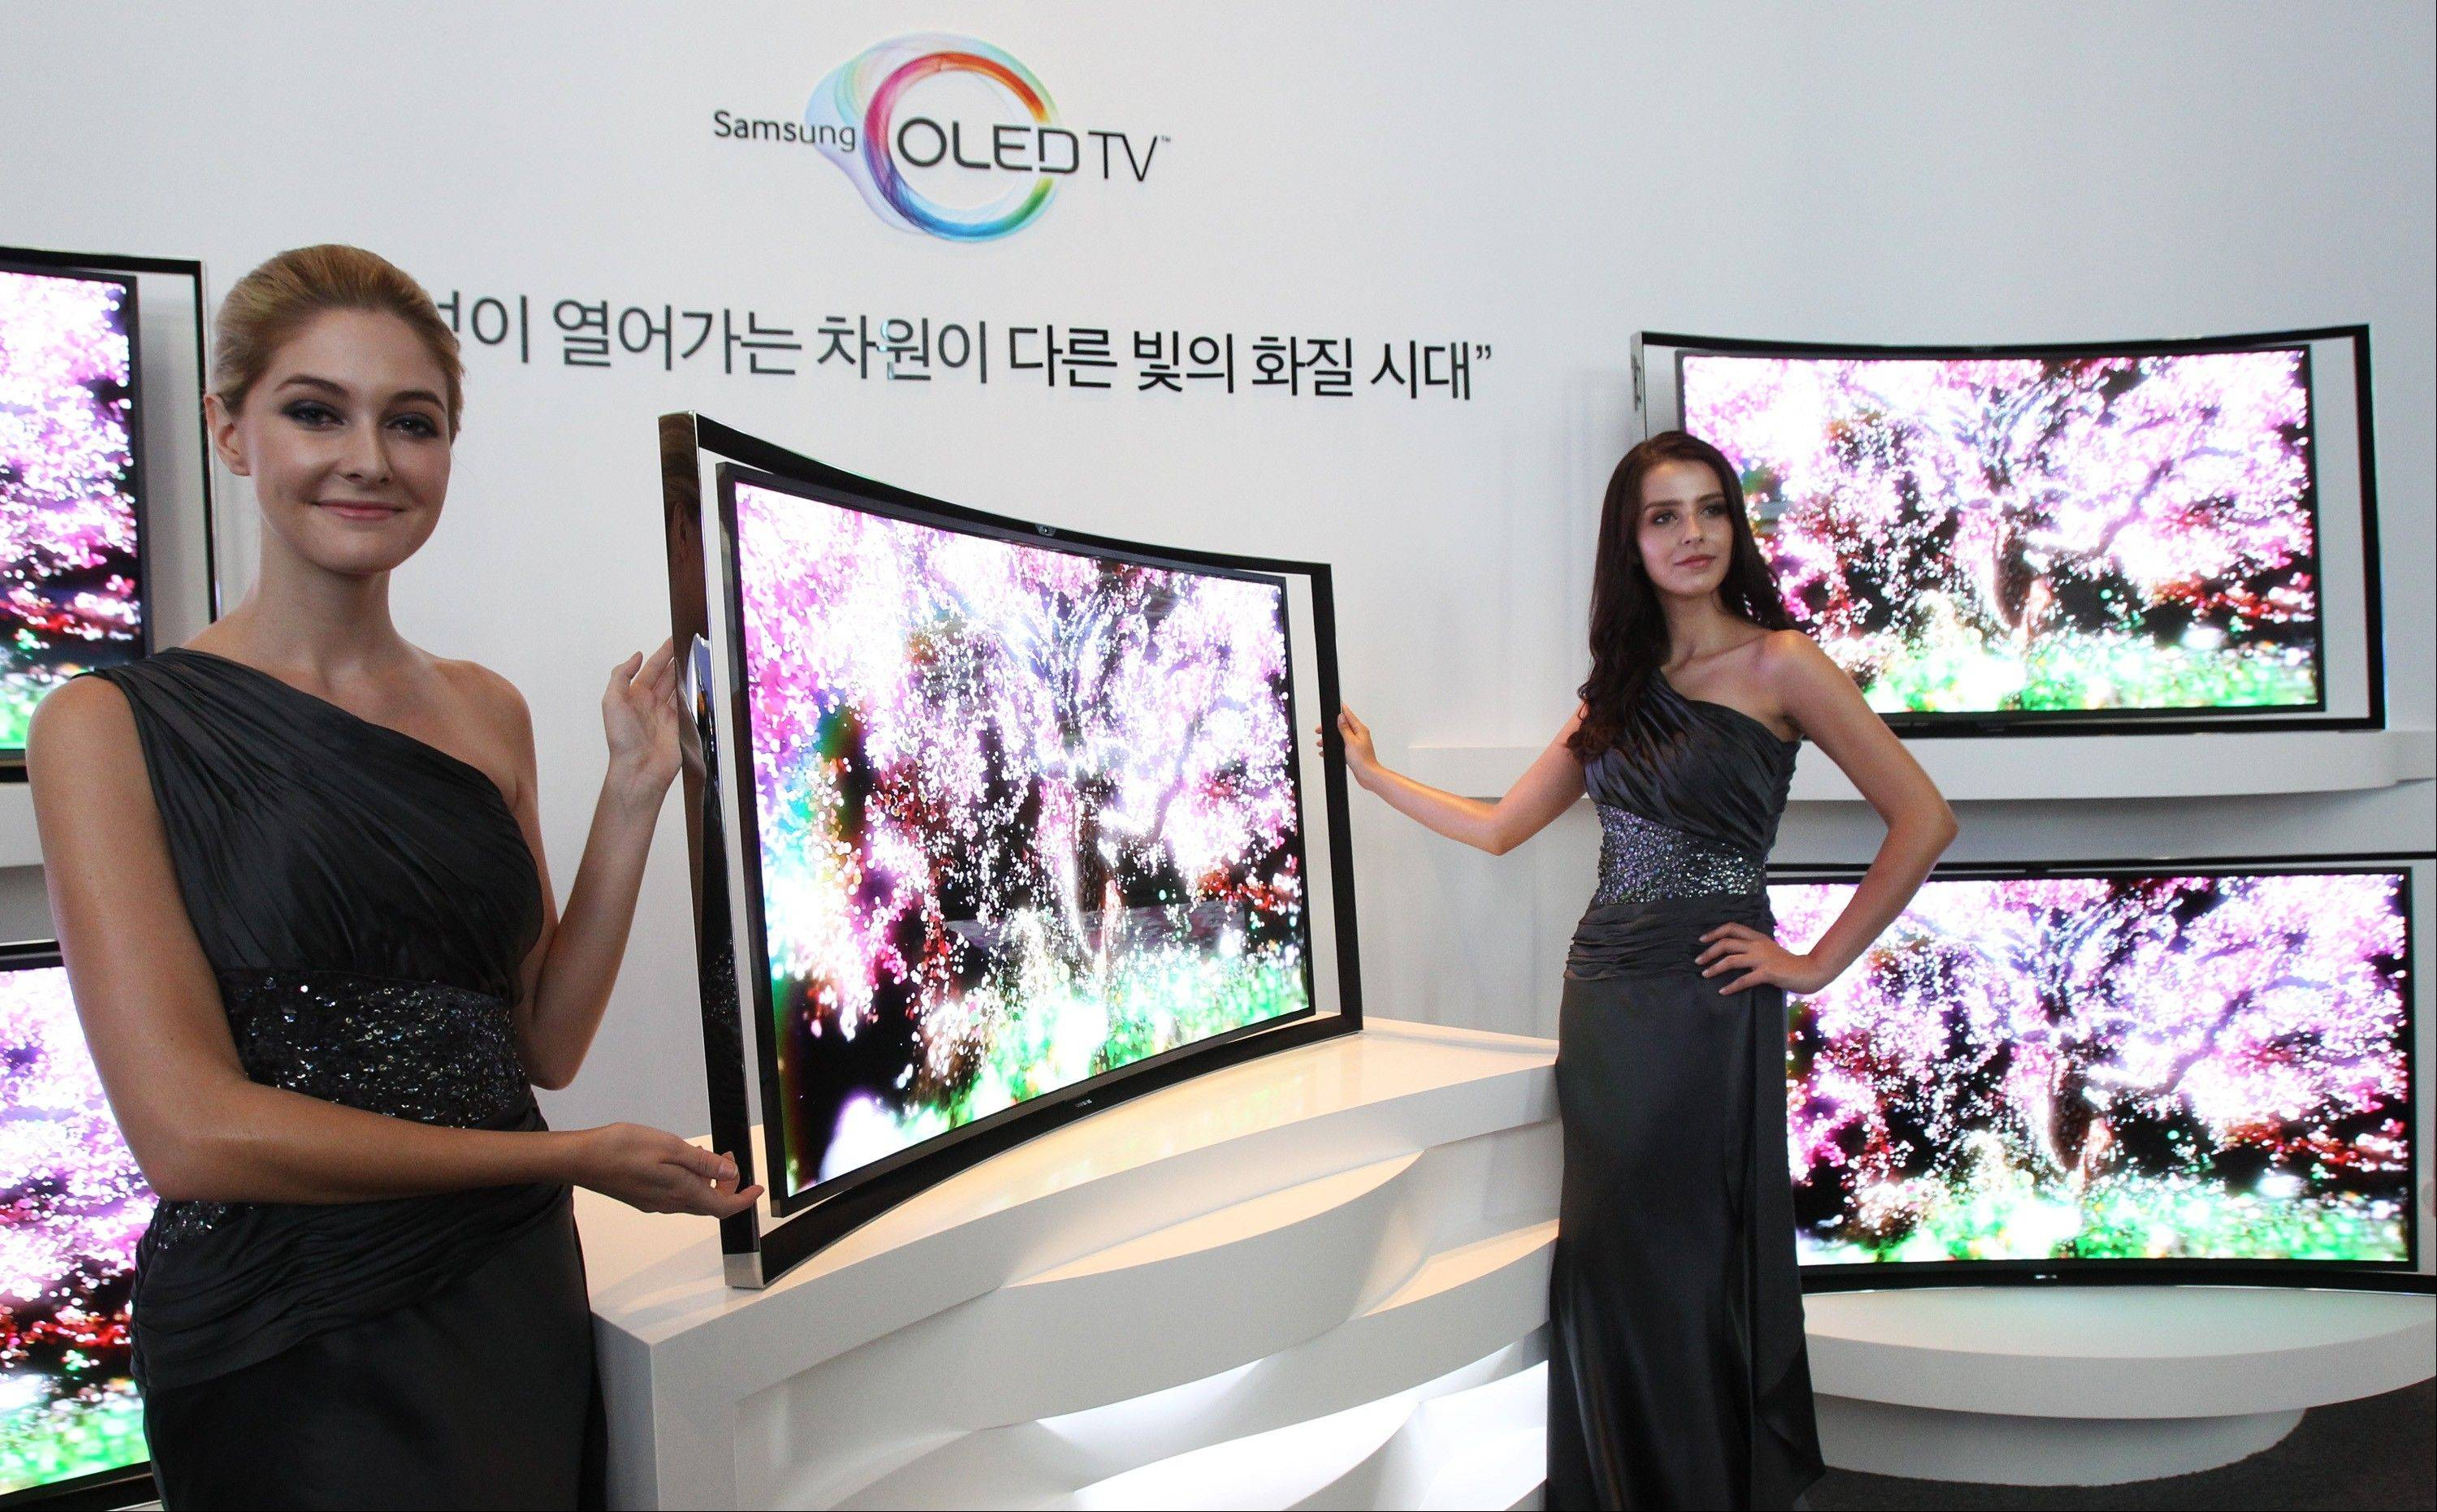 Models pose Thursday with a Samsung Electronics Co.'s 55-inch curved OLED TV during a news conference at its headquarters in Seoul, South Korea. After delays, Samsung rolled out Thursday the curved TV that uses an advanced display called OLED. The 55-inch TV will sell for $13,000 in South Korea, more than five times the cost of LCD televisions of the same size.